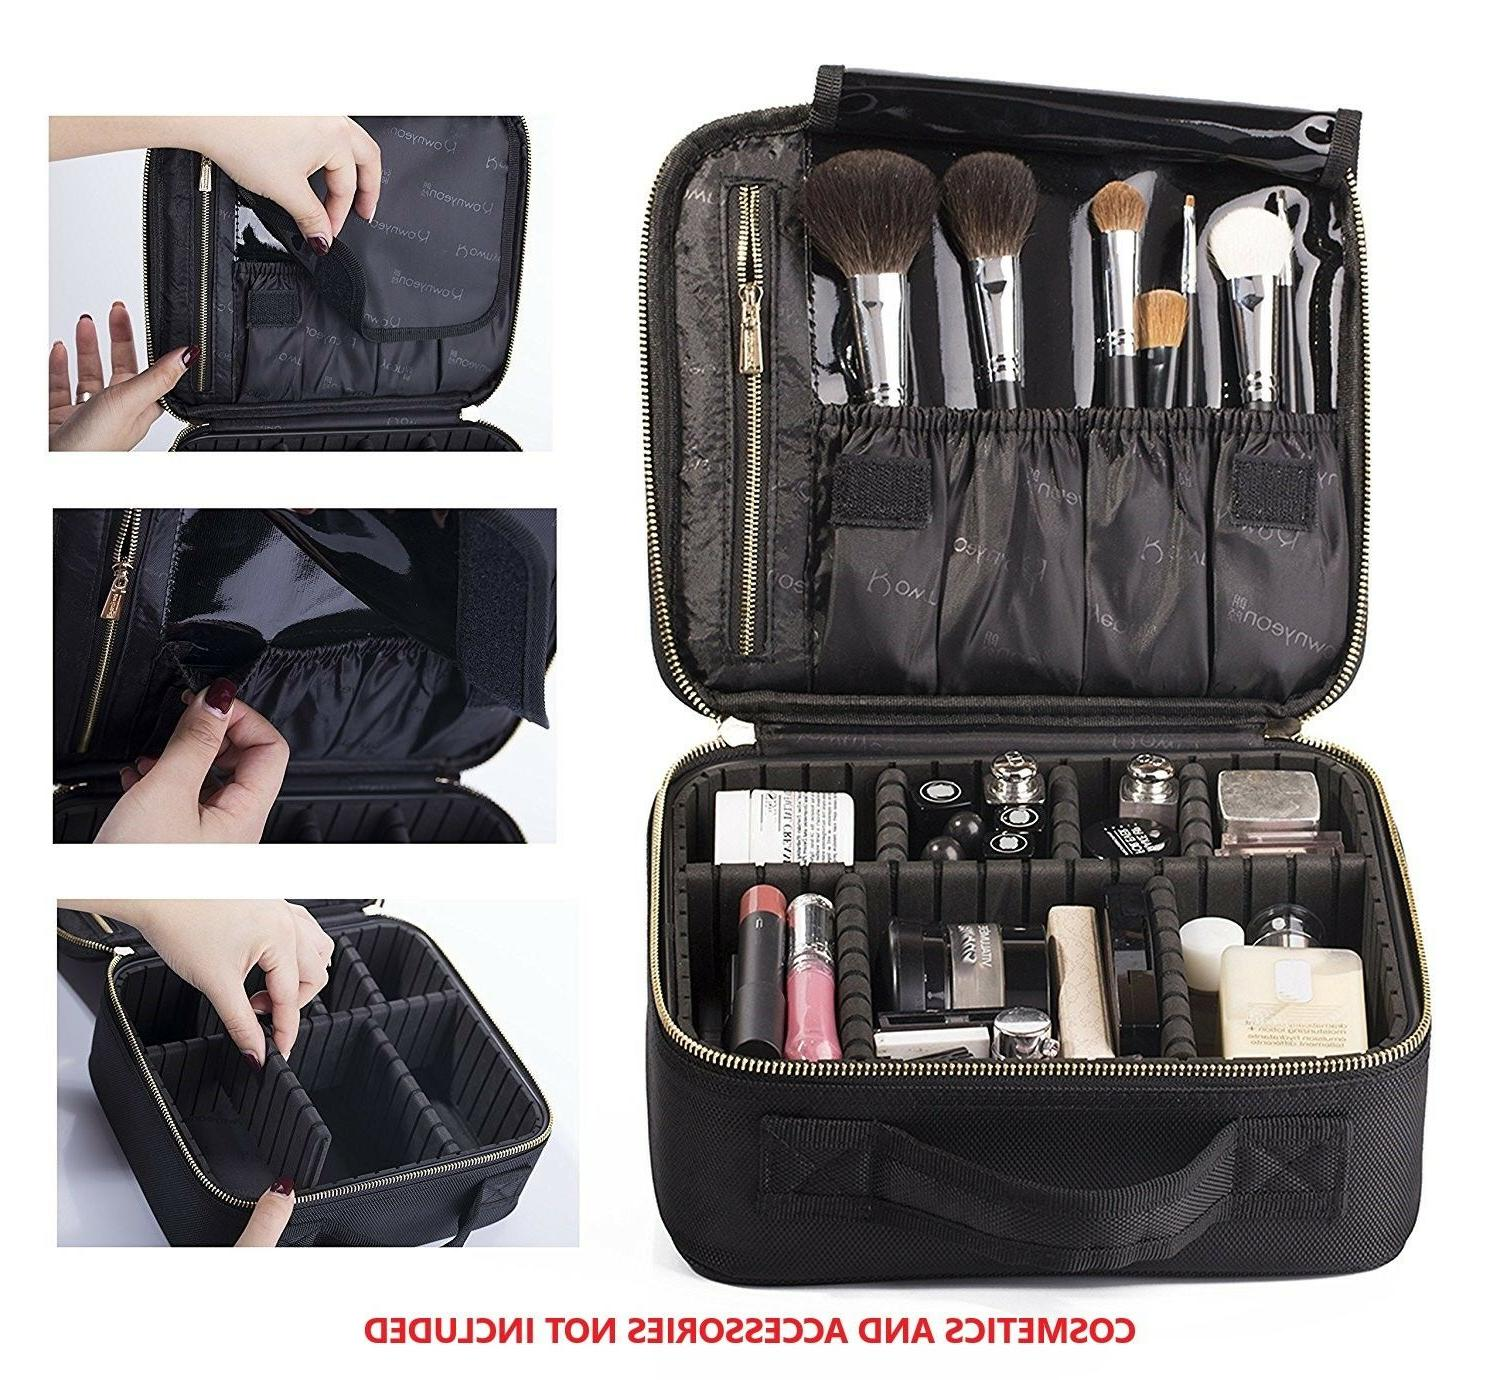 Rownyeon Mini Makeup Travel Bag Organizer Professional Make Up